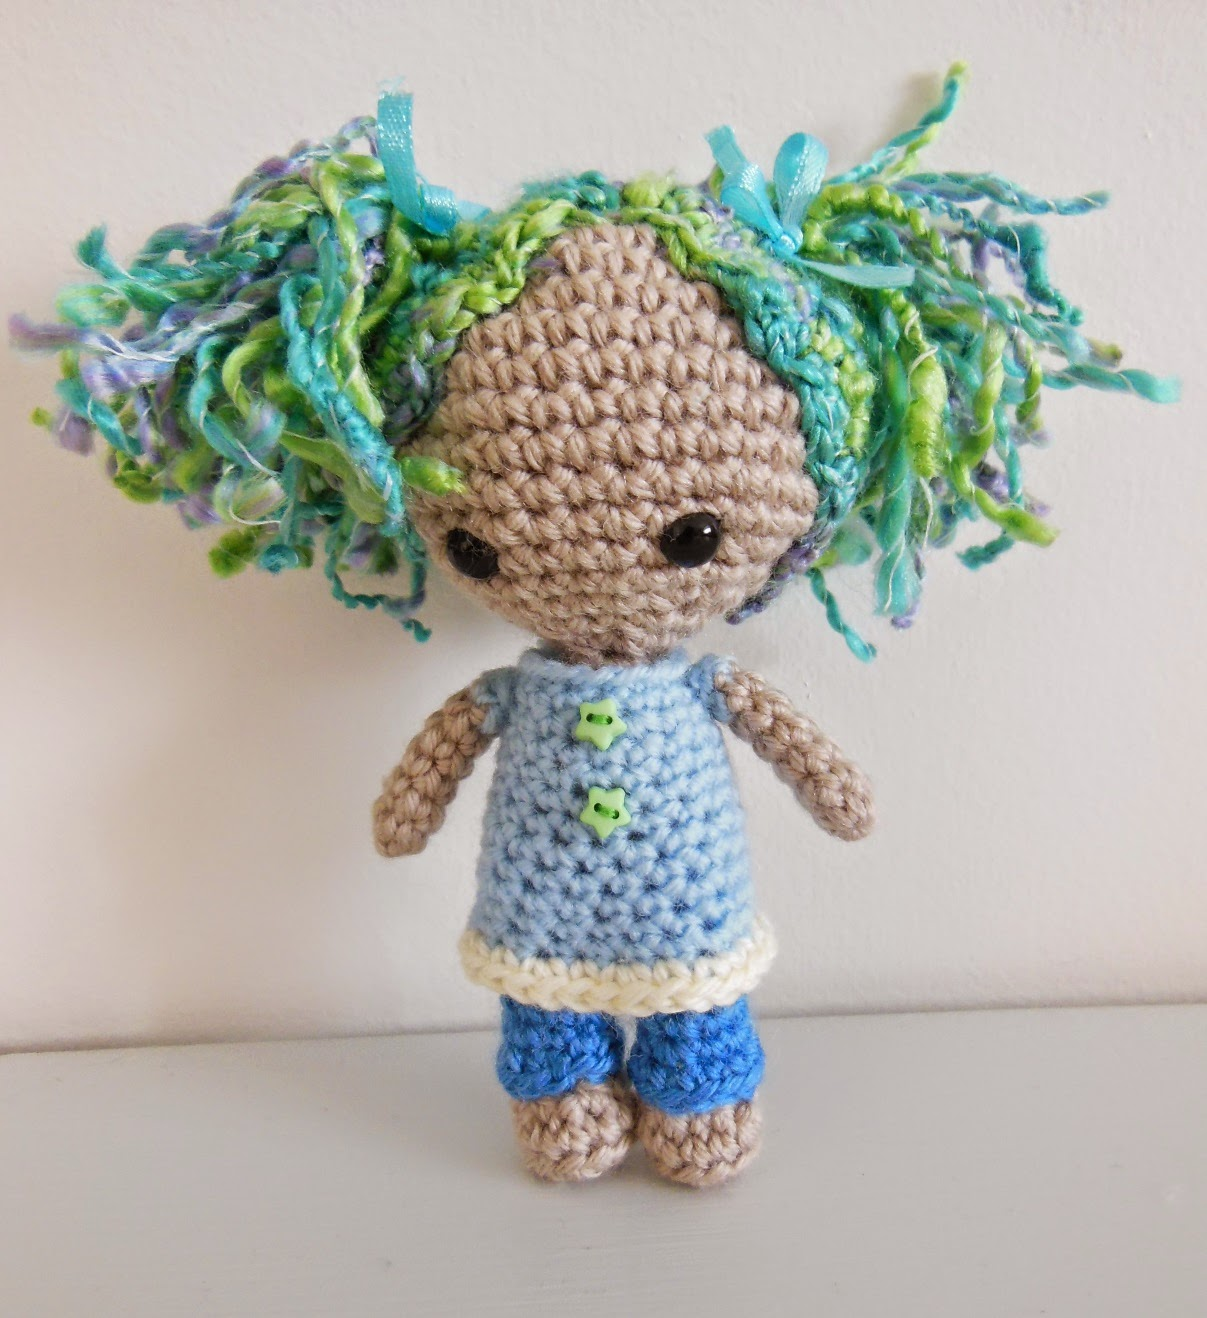 http://knotart.wordpress.com/2014/07/16/new-free-pattern-dollydoll/